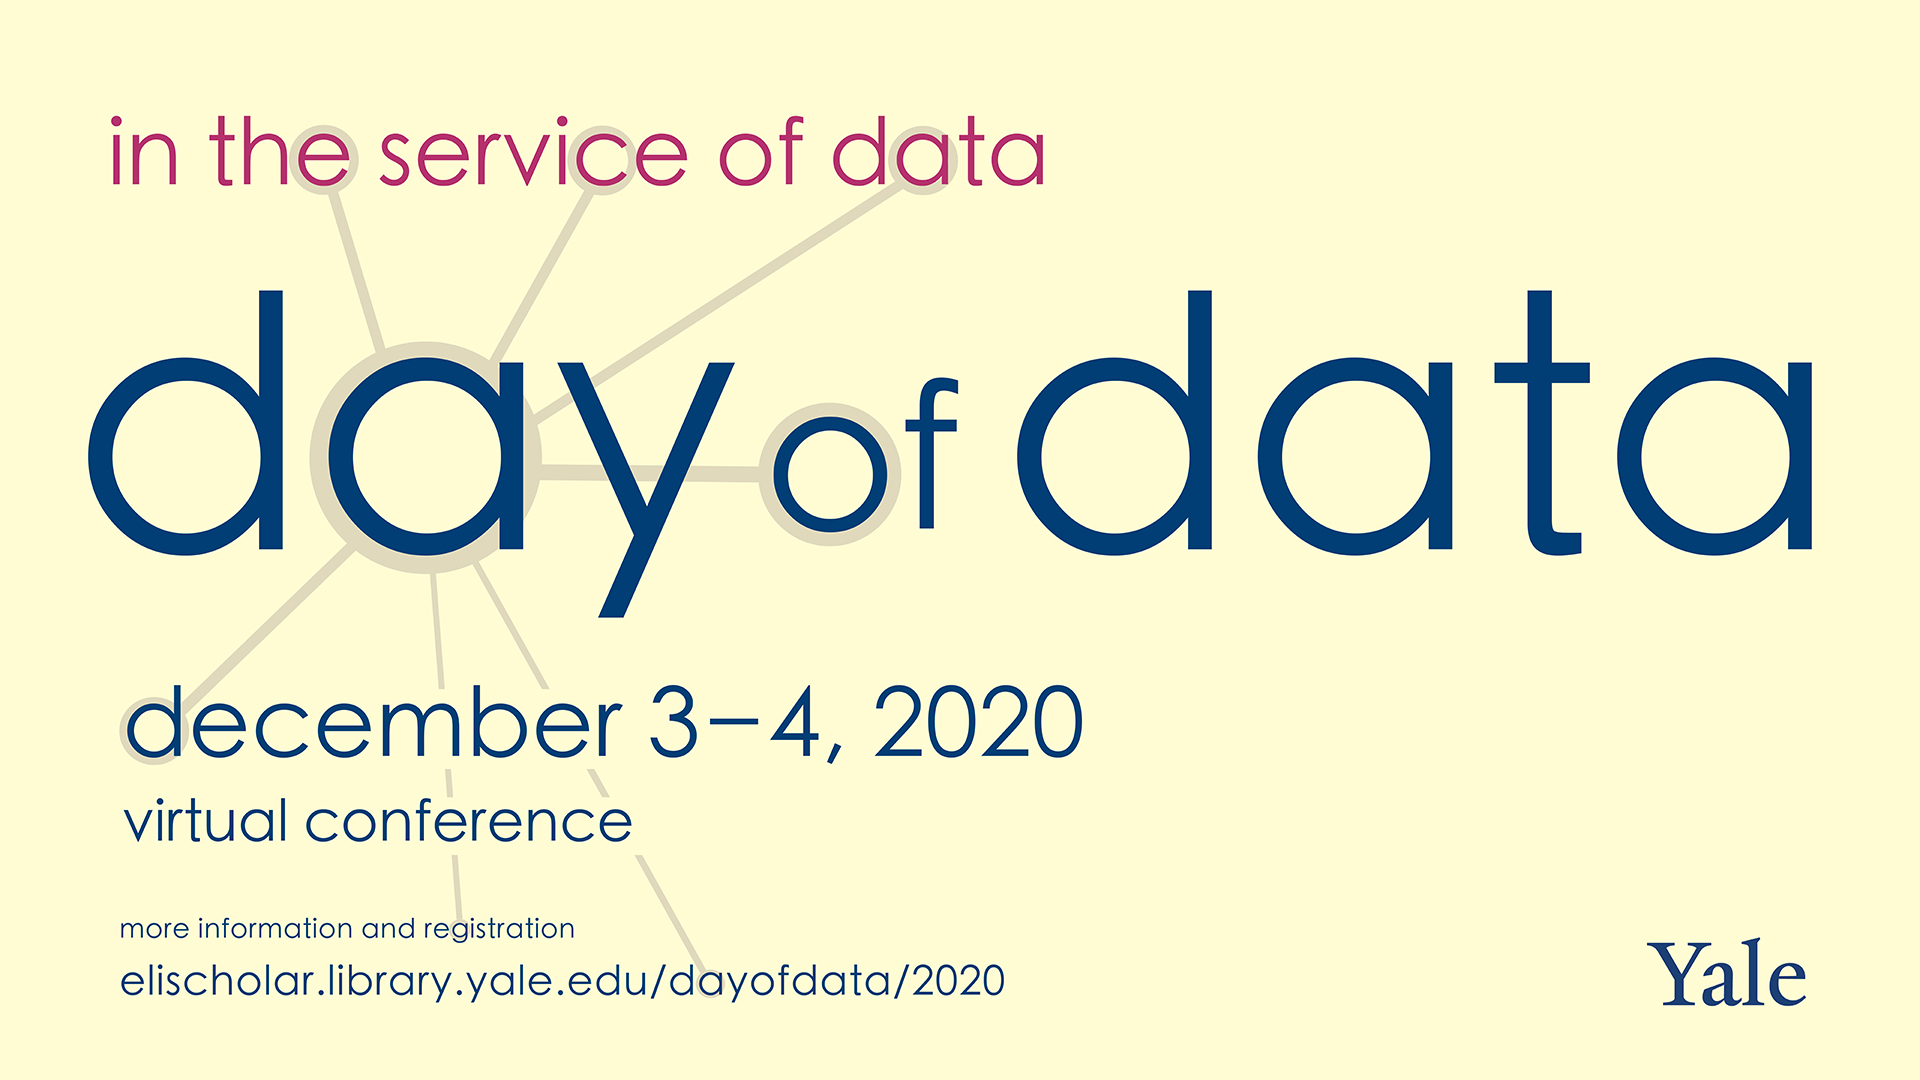 Day of Data 2020